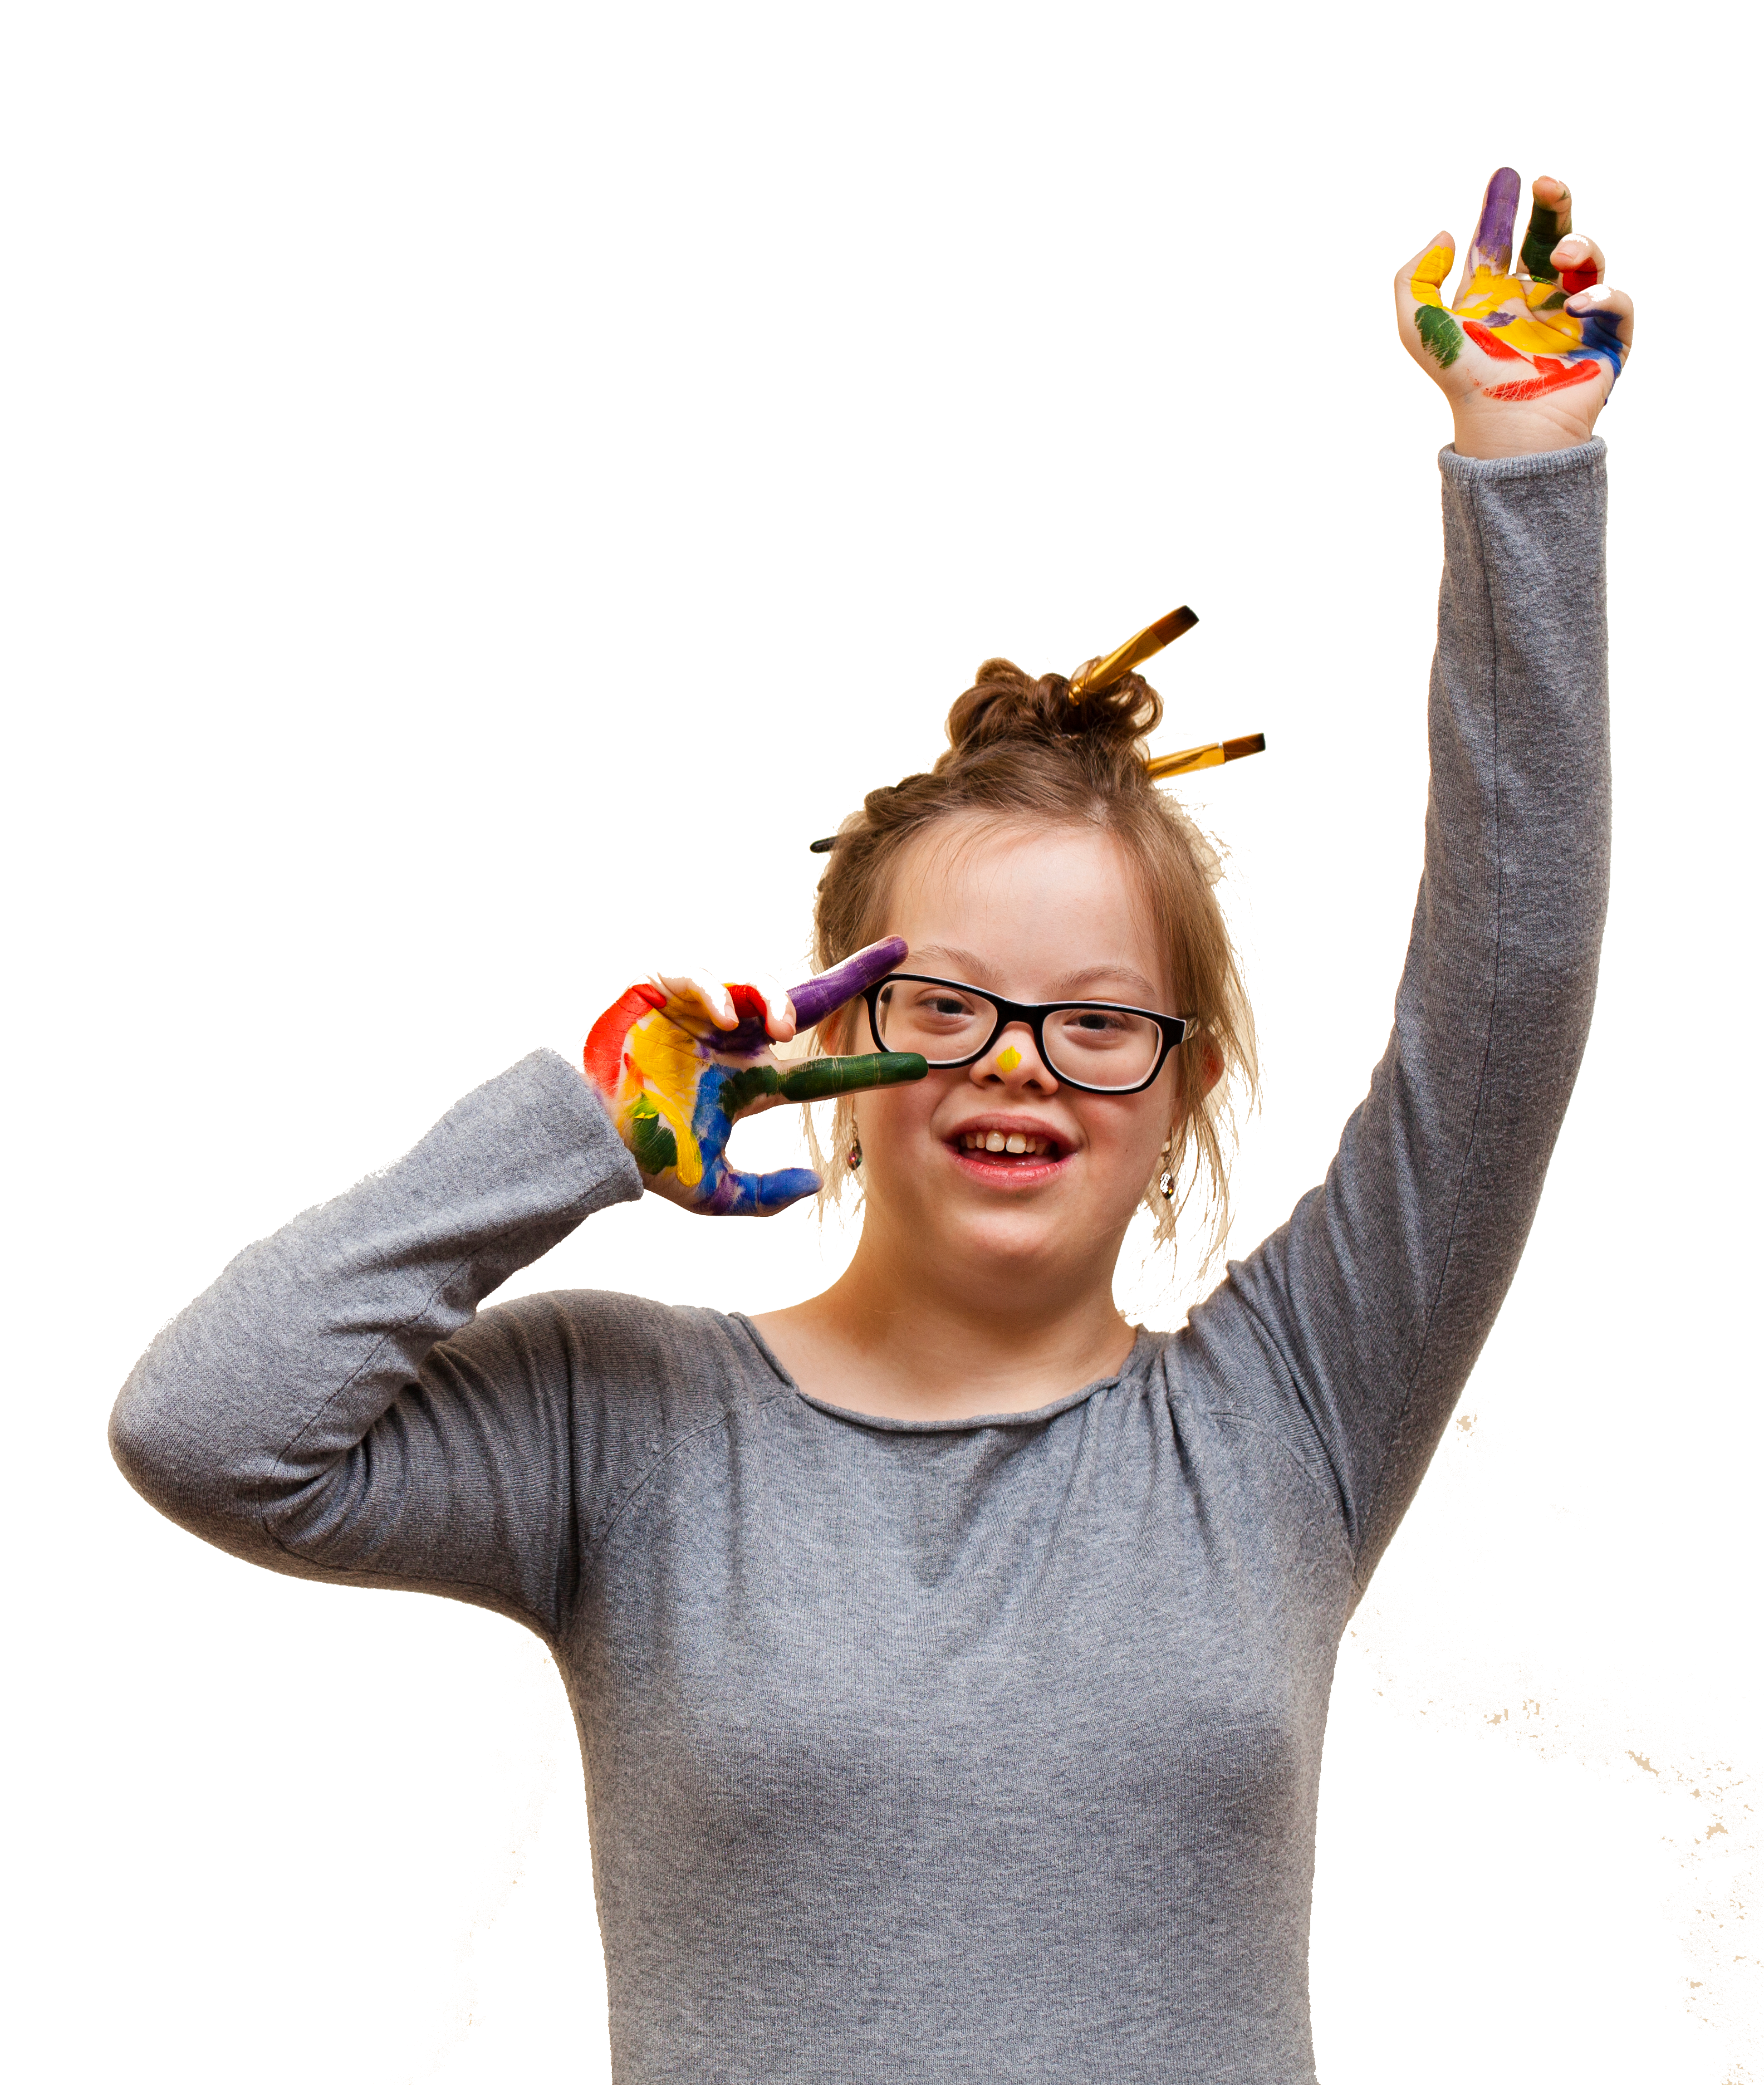 smiley-girl-with-down-syndrome-colorful-palms